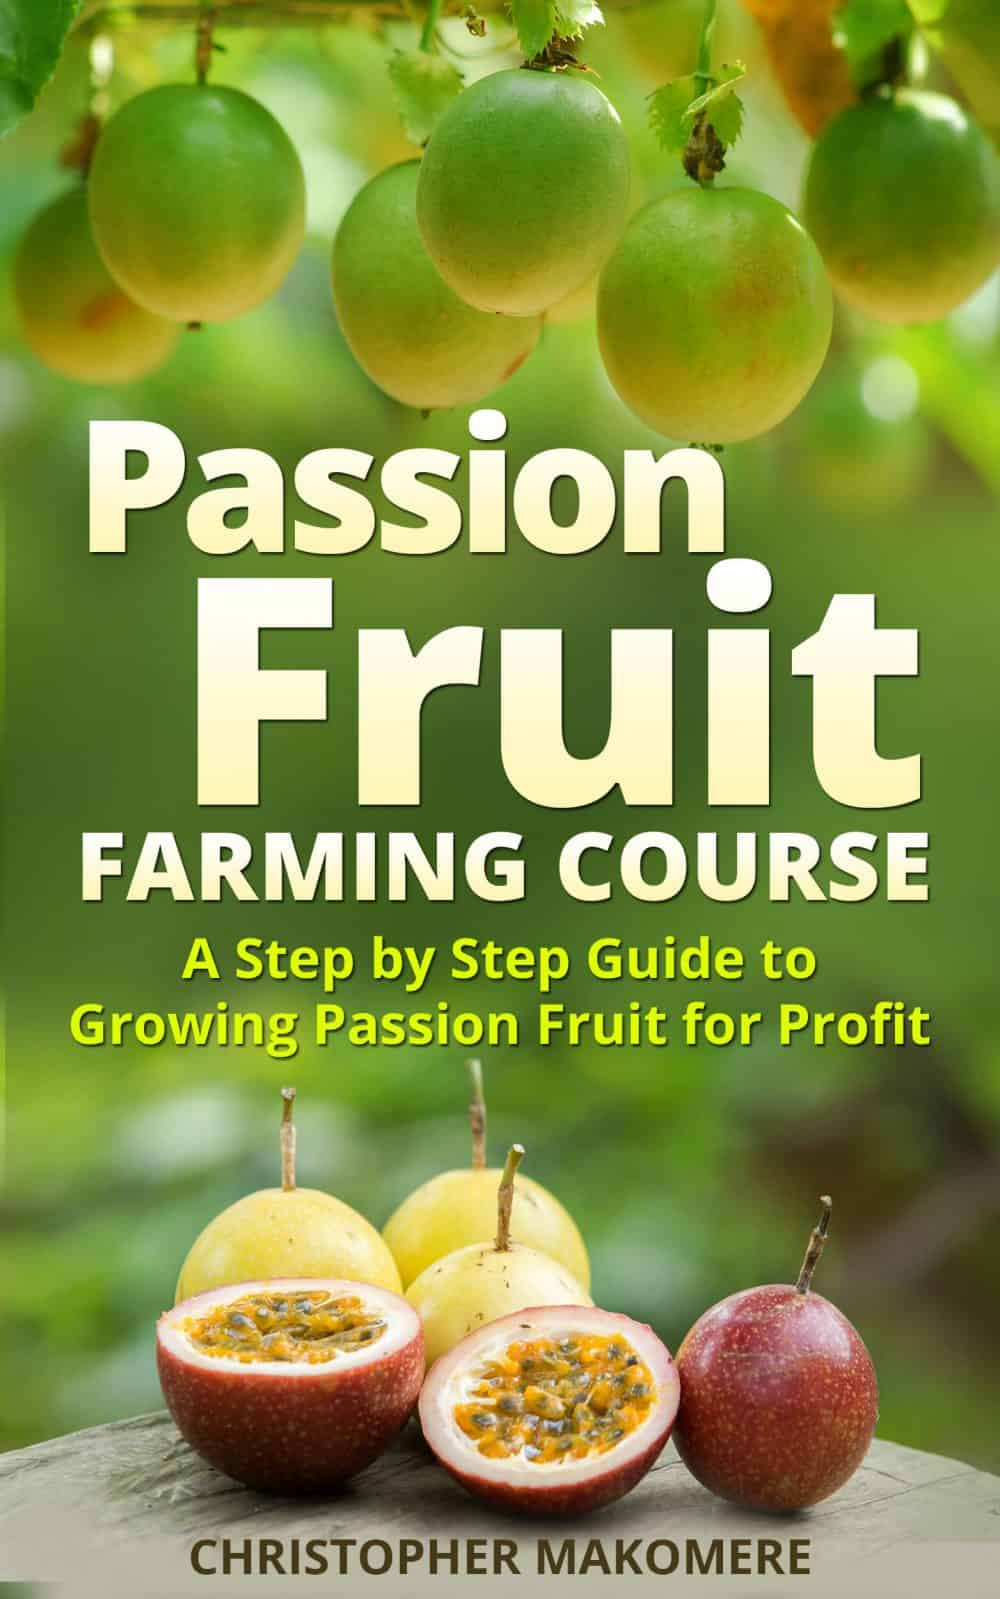 Passion Fruit Farming Course